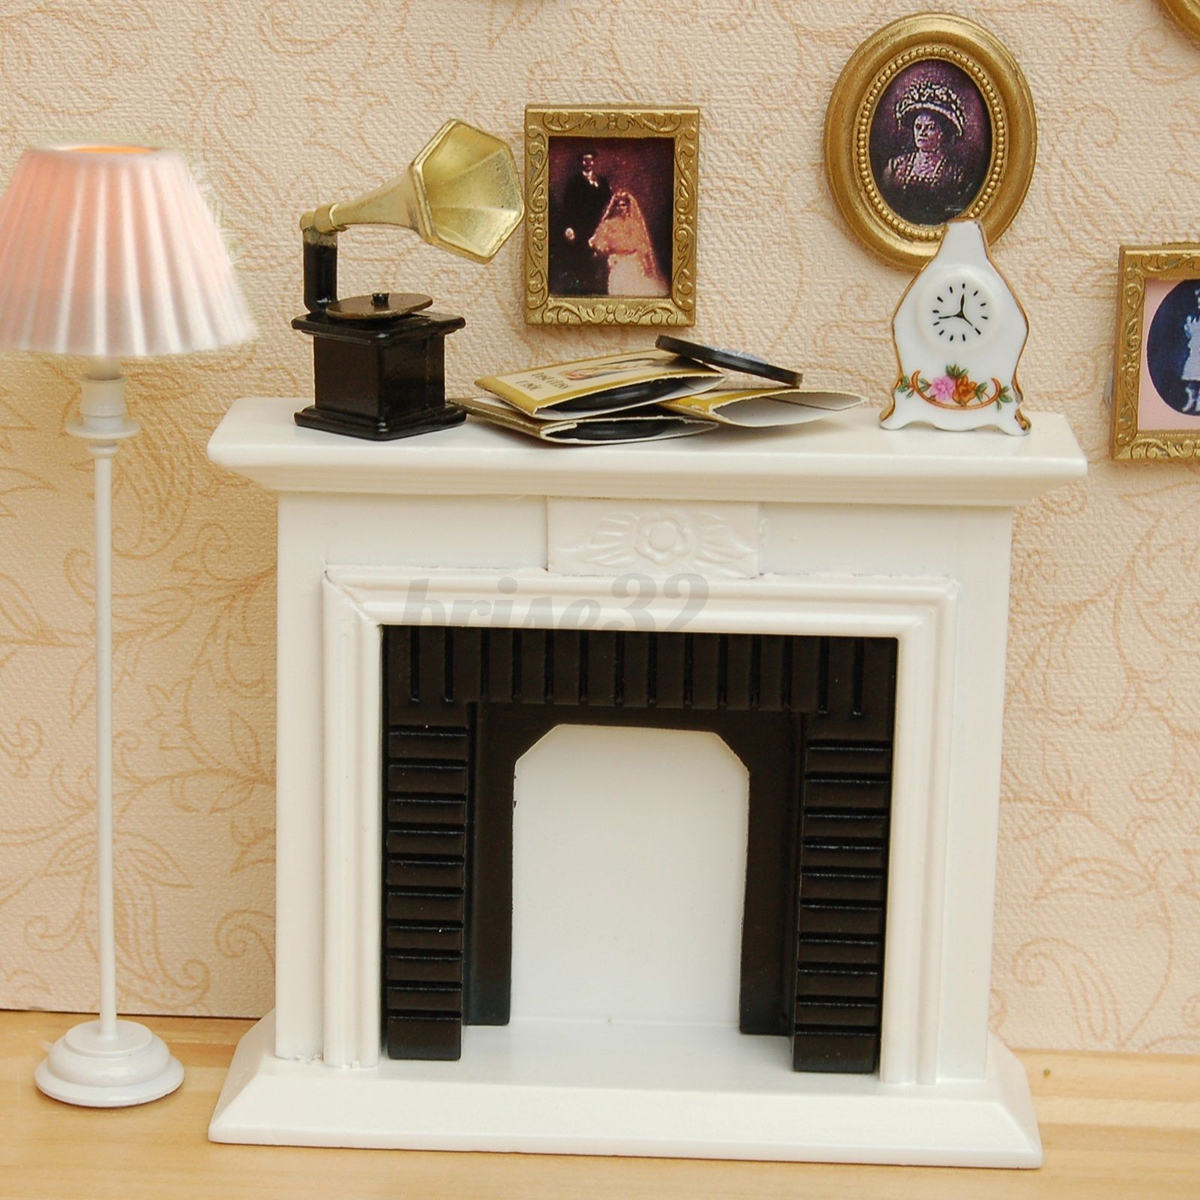 Miniature Wooden Vintage Fireplace For 1:12 Dollhouse Room Furniture Decor US